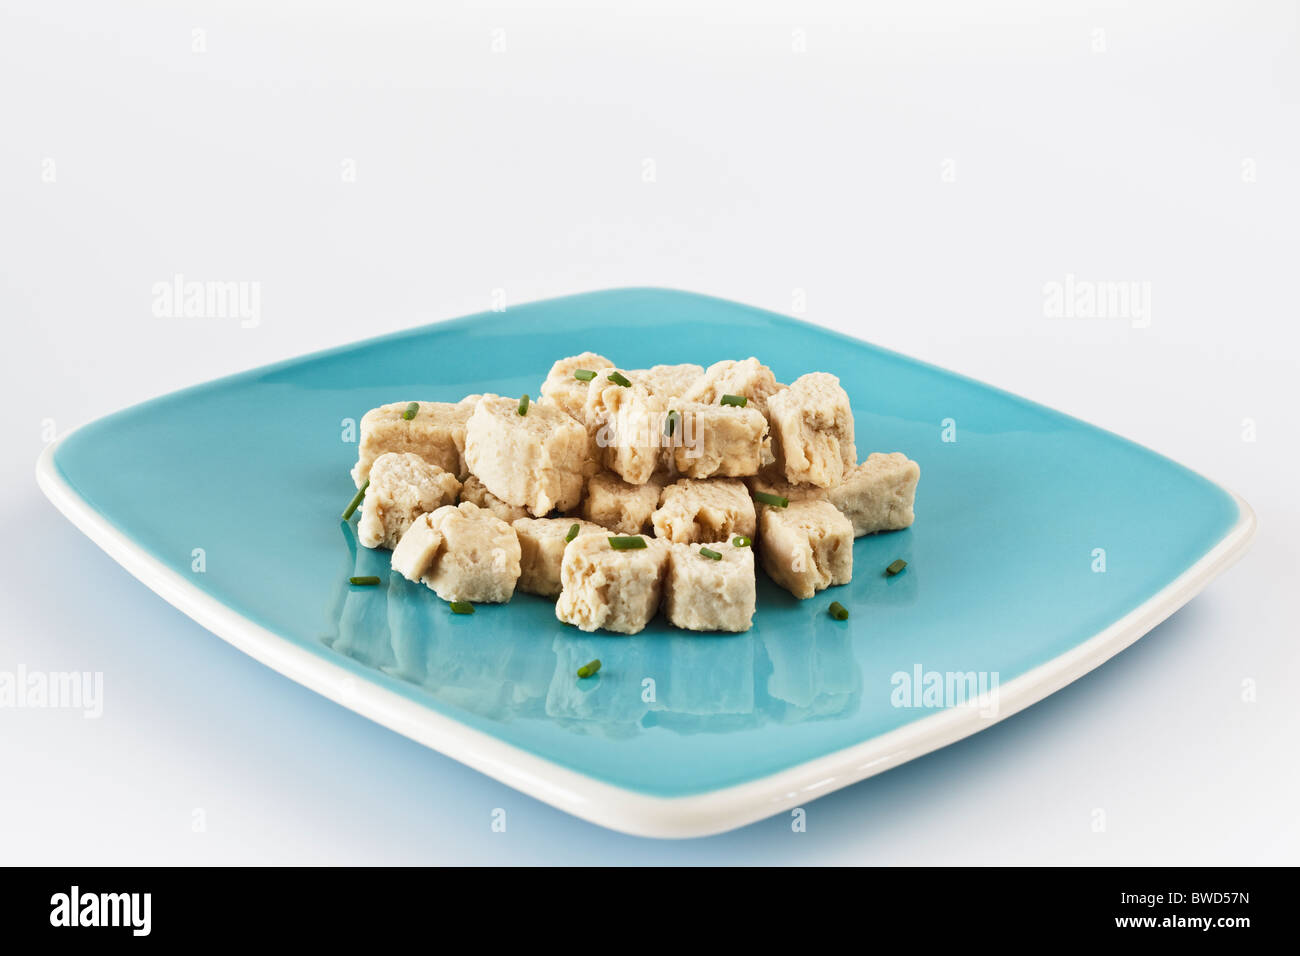 Fresh Quorn on blue plate - Stock Image